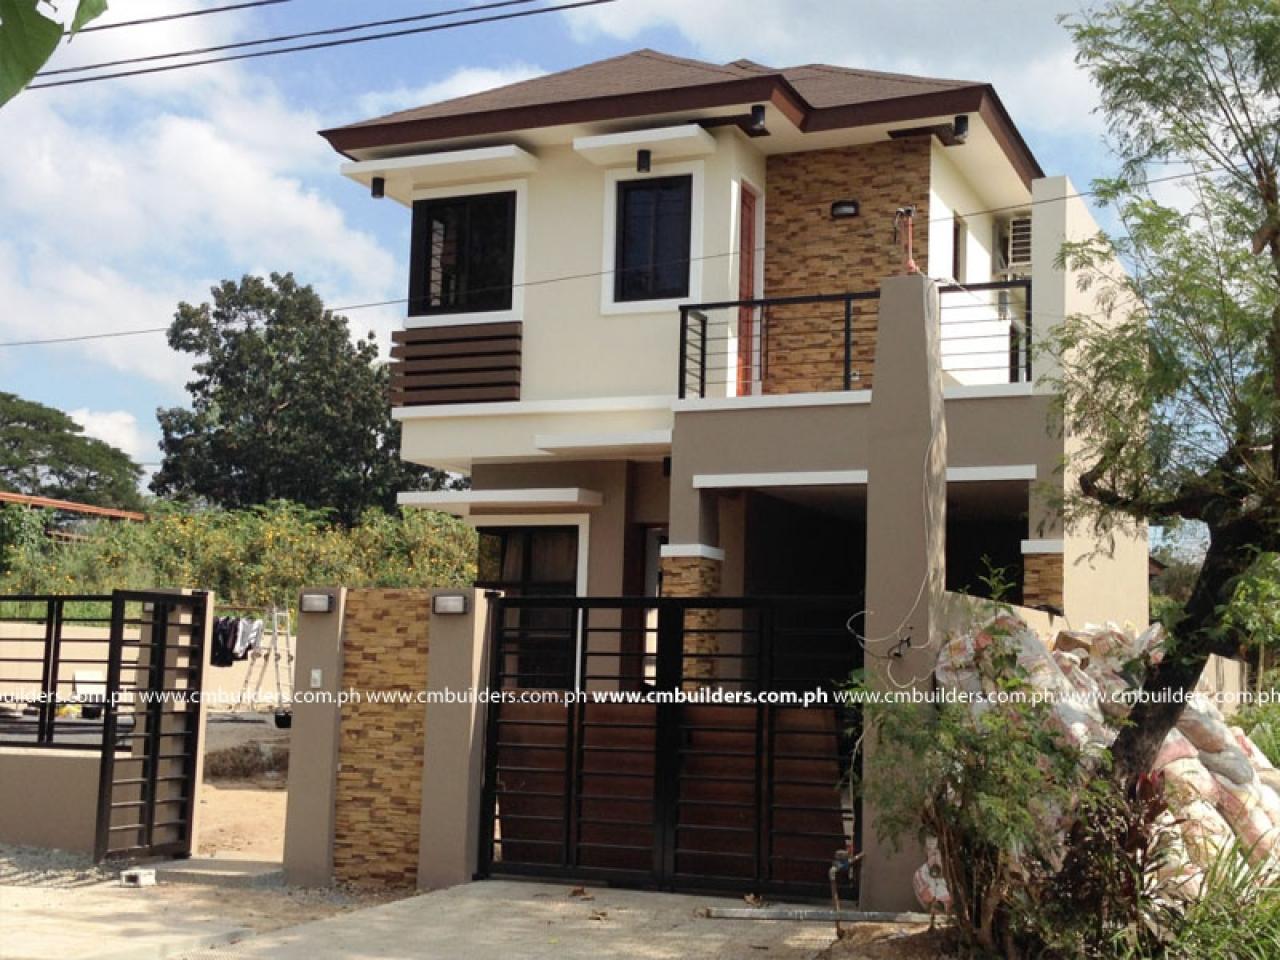 modern zen house design philippines simple small house floor plans lrg caa1d07f910cd231 - Get Two Story Modern Small House Design  Pics